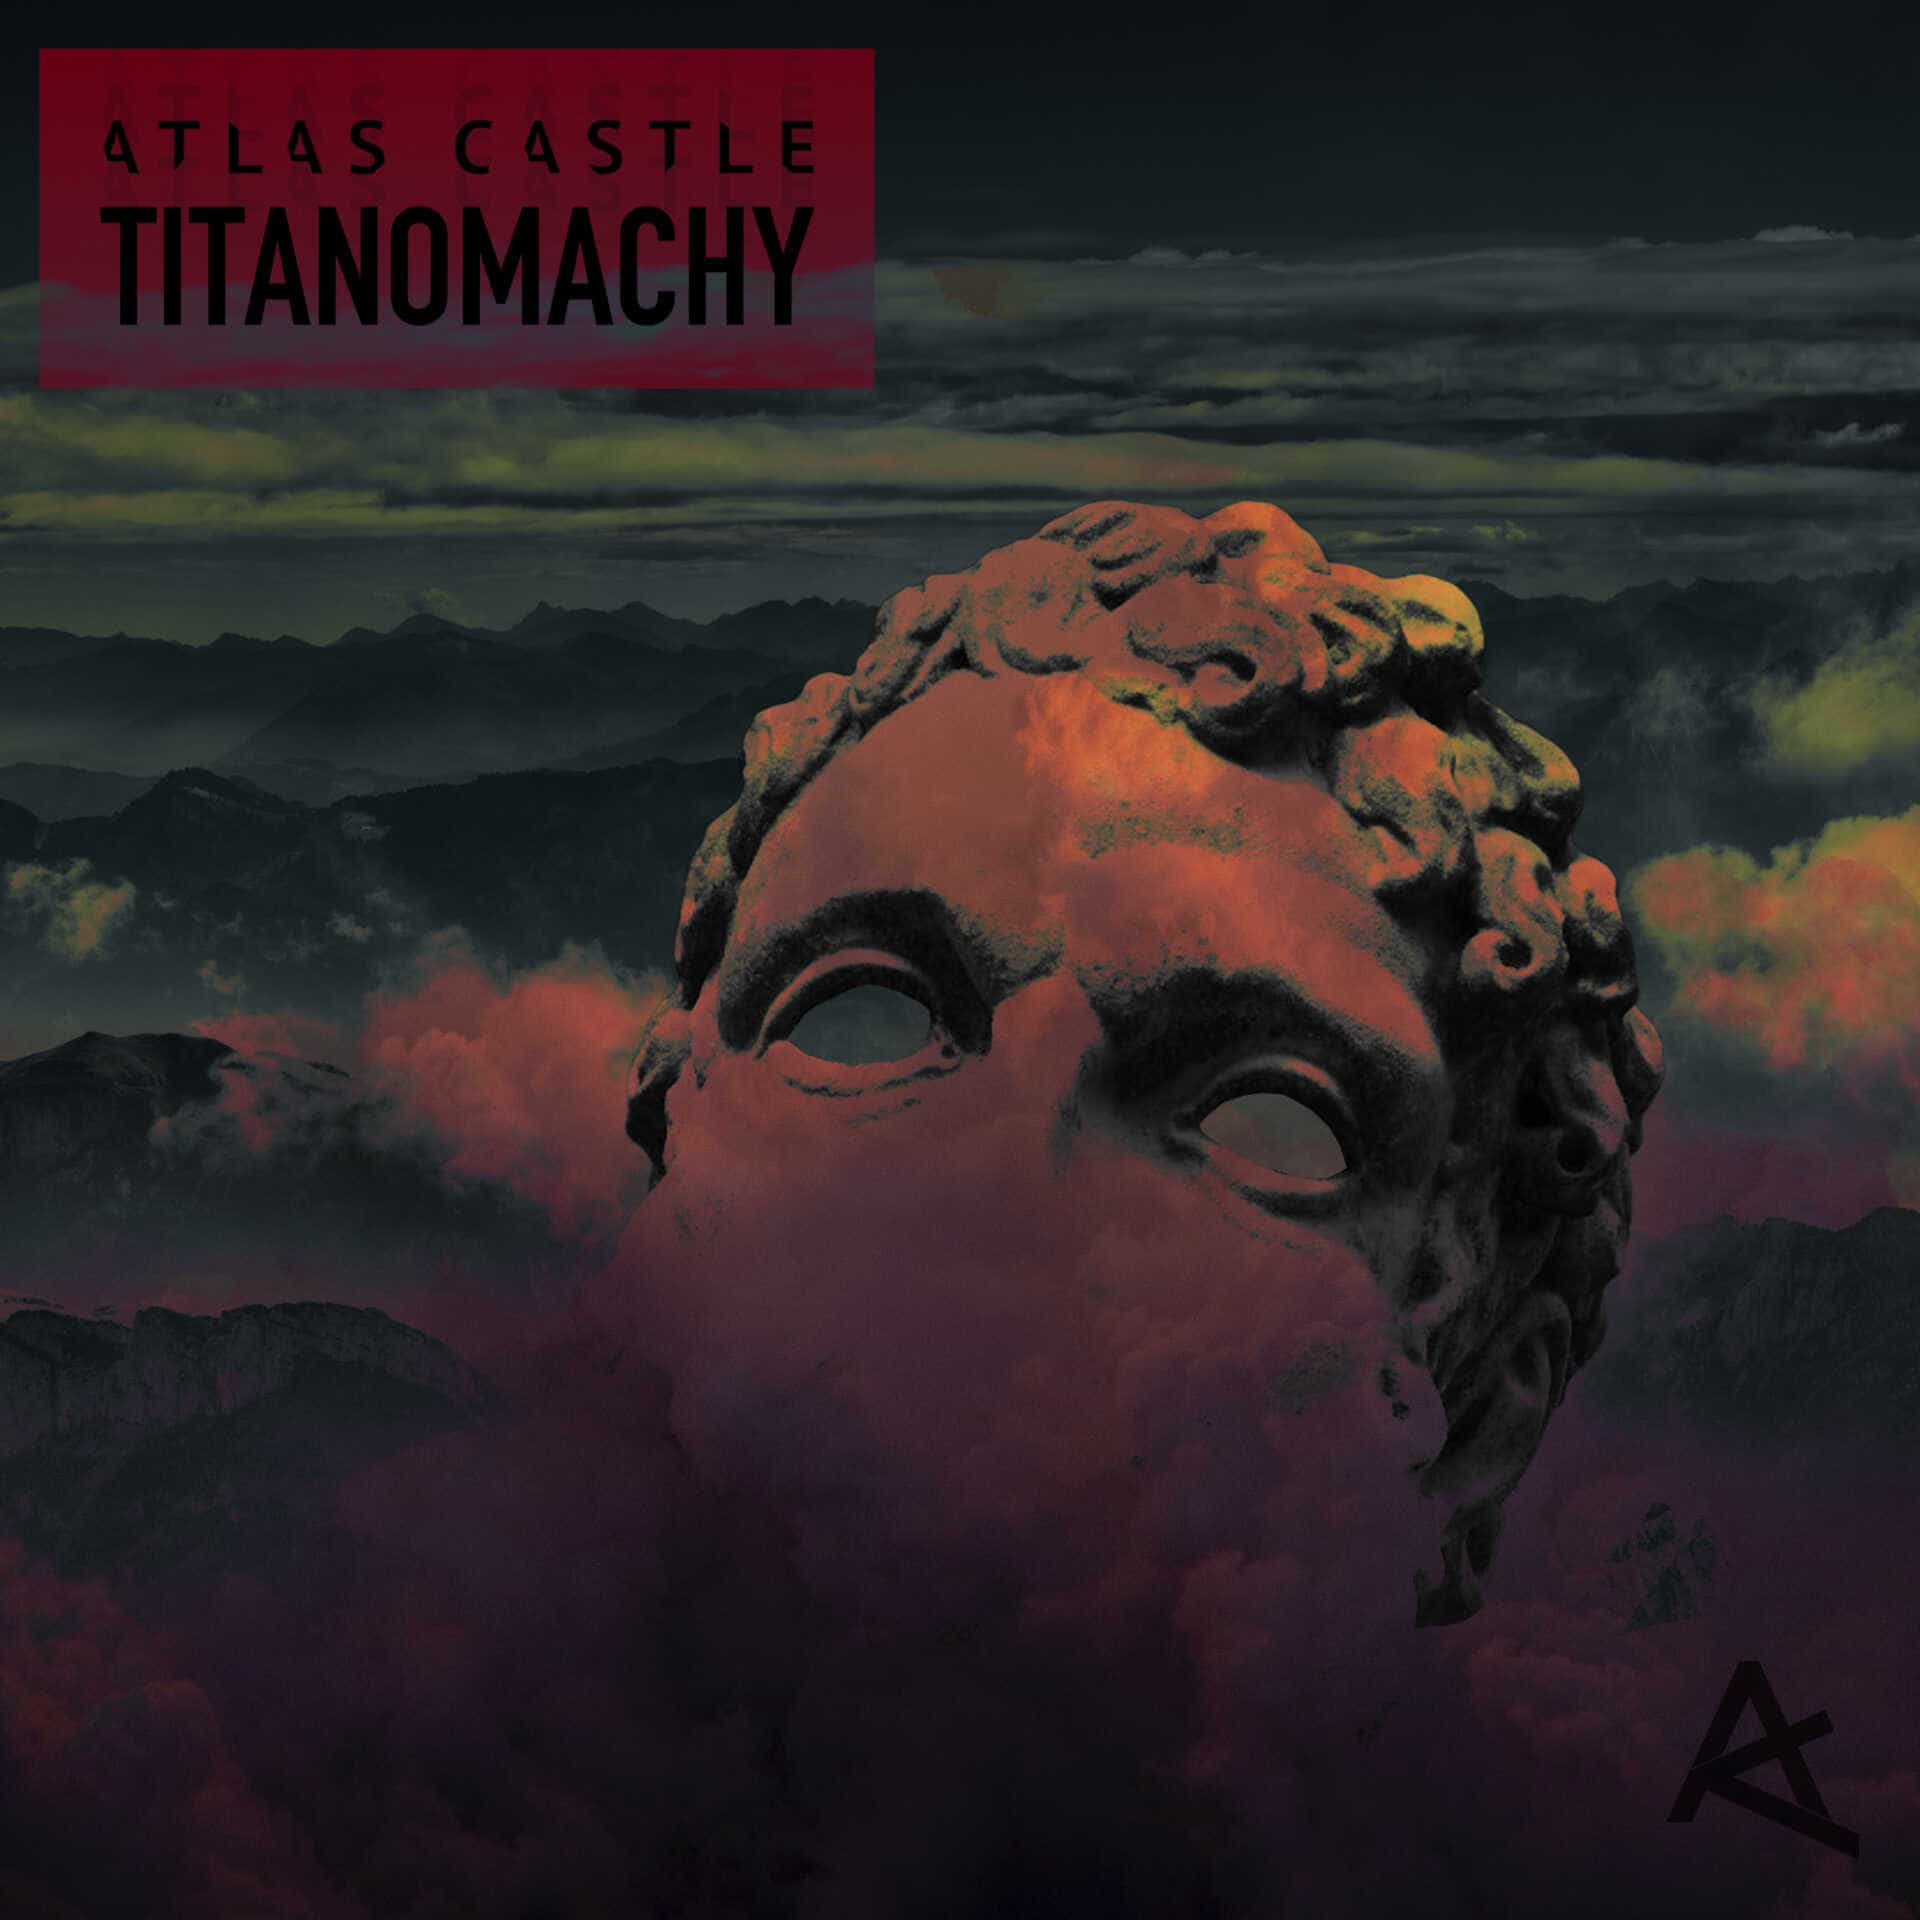 The artwork for the EP Titanomachy by Atlas Castle